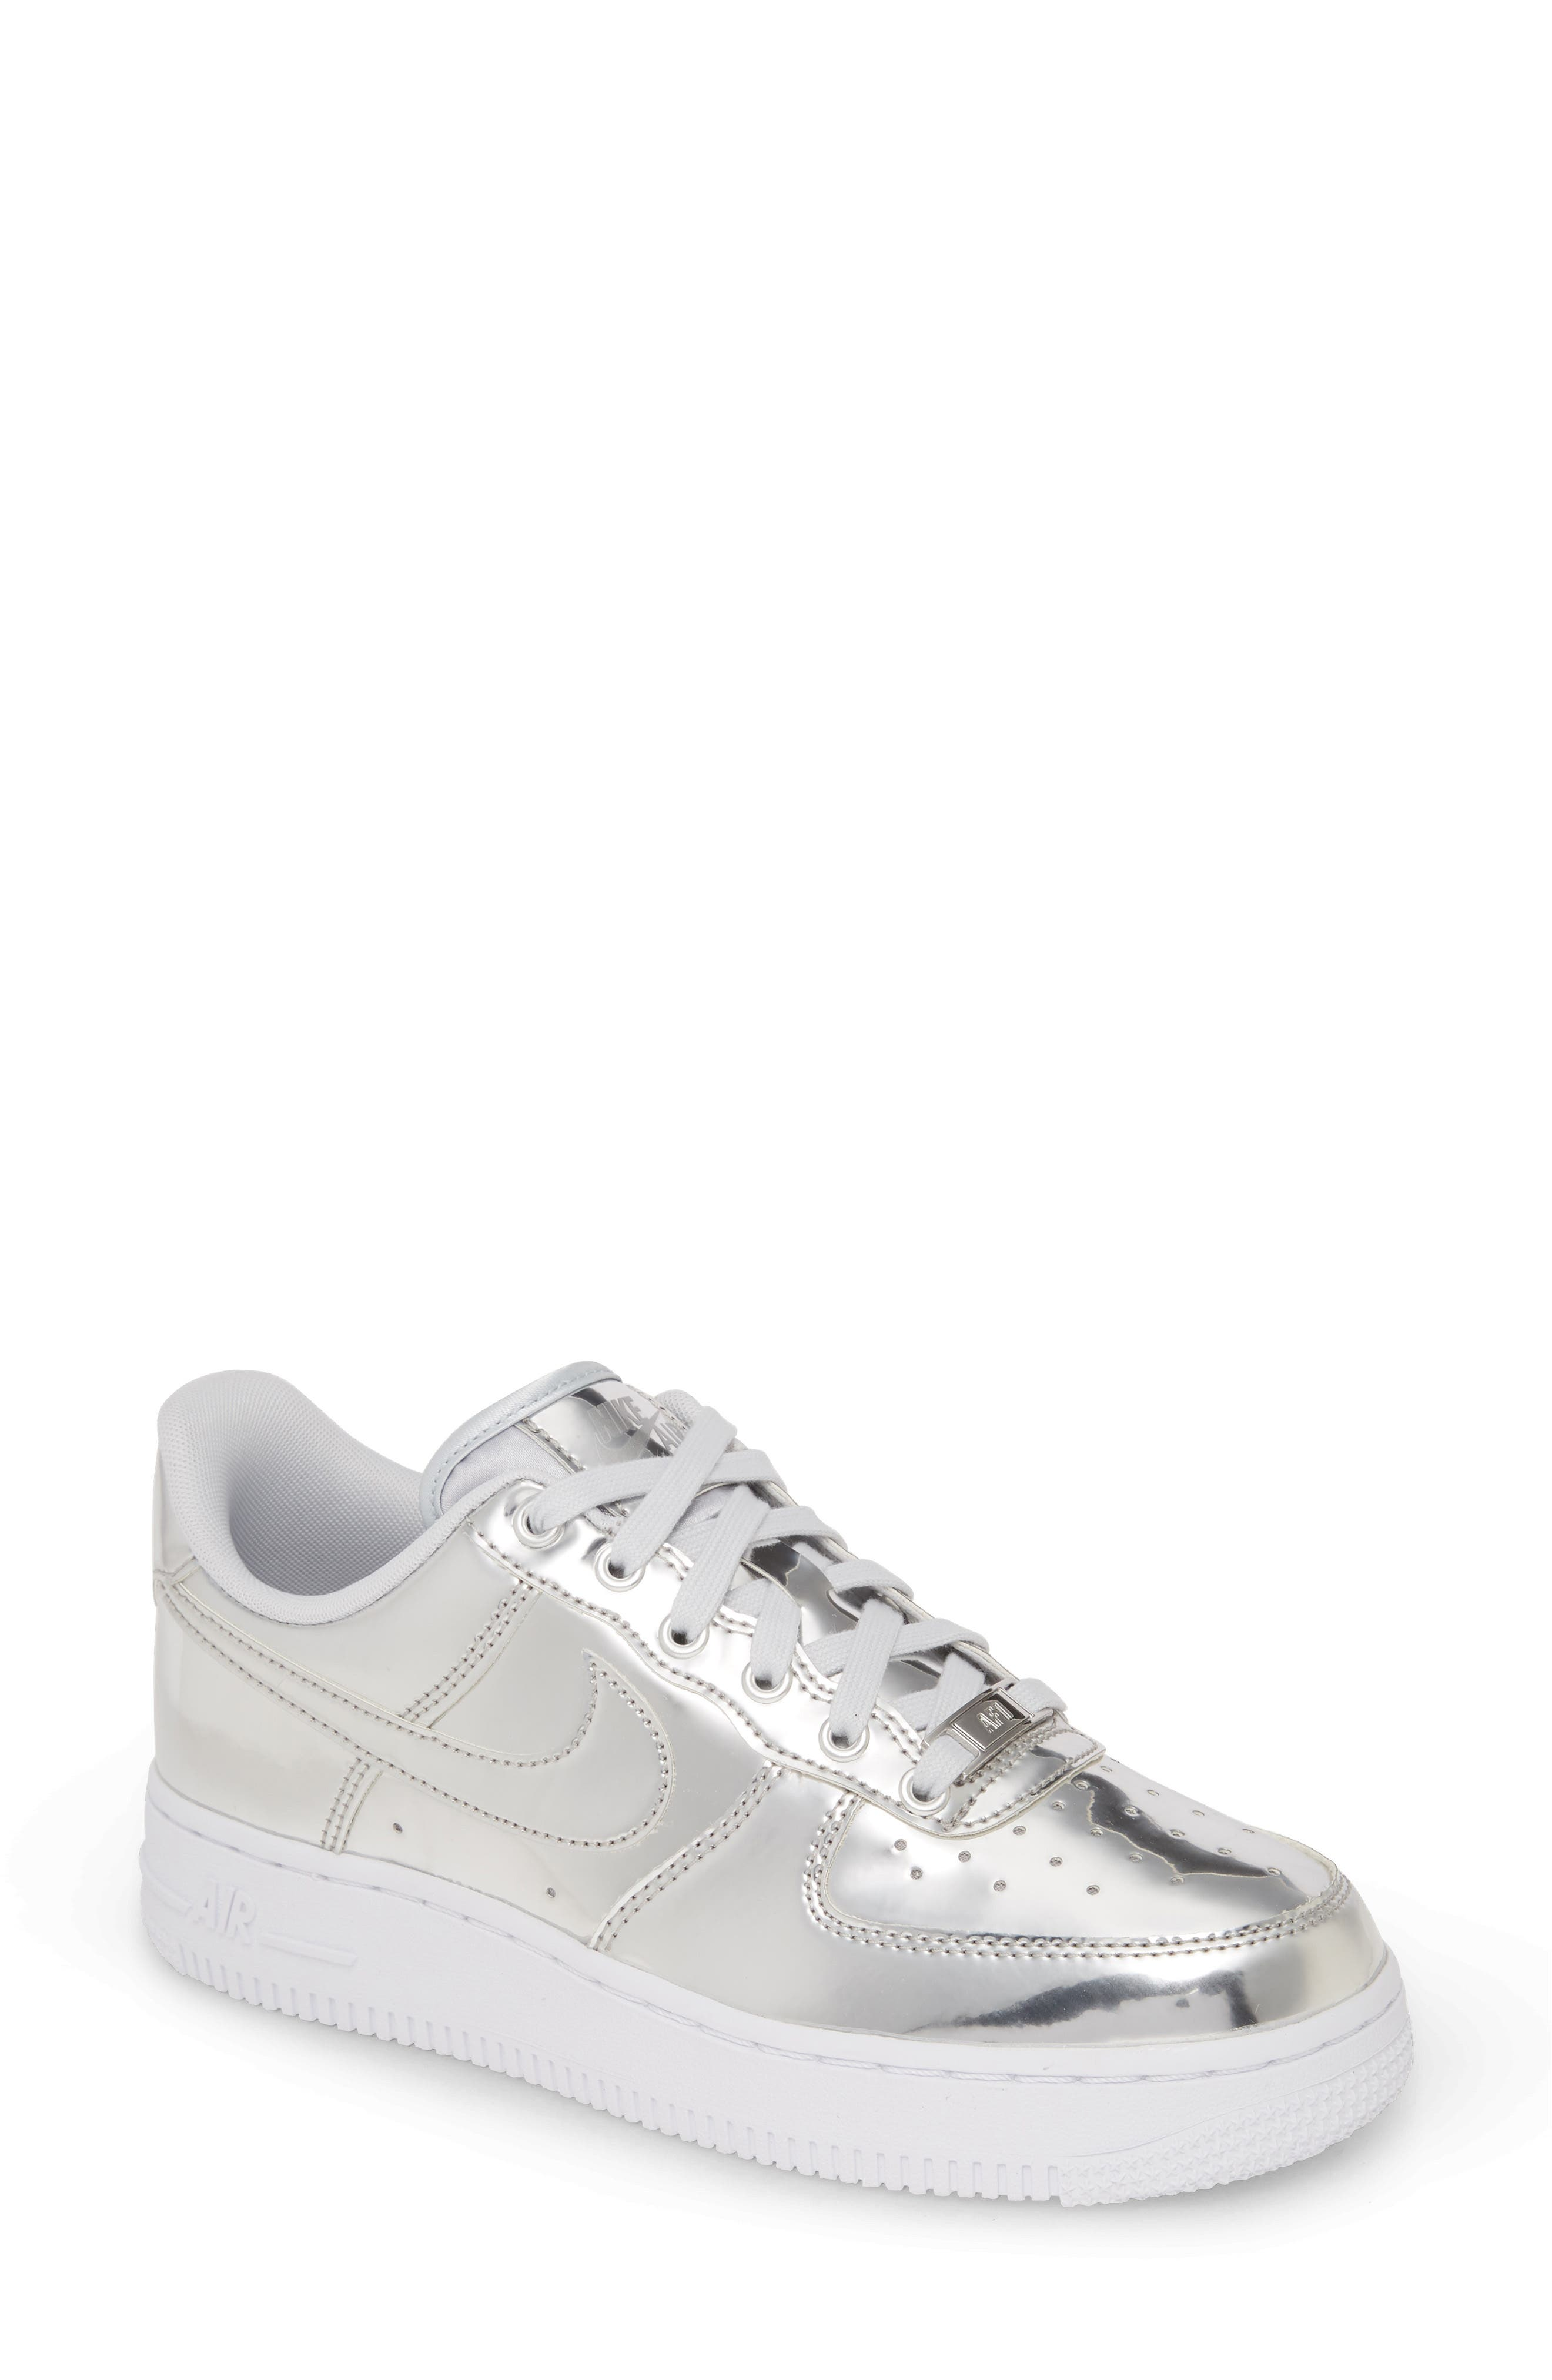 Scarpa Nike Air Force 1'07 Essential Donna Silver from Nike on 21 Buttons